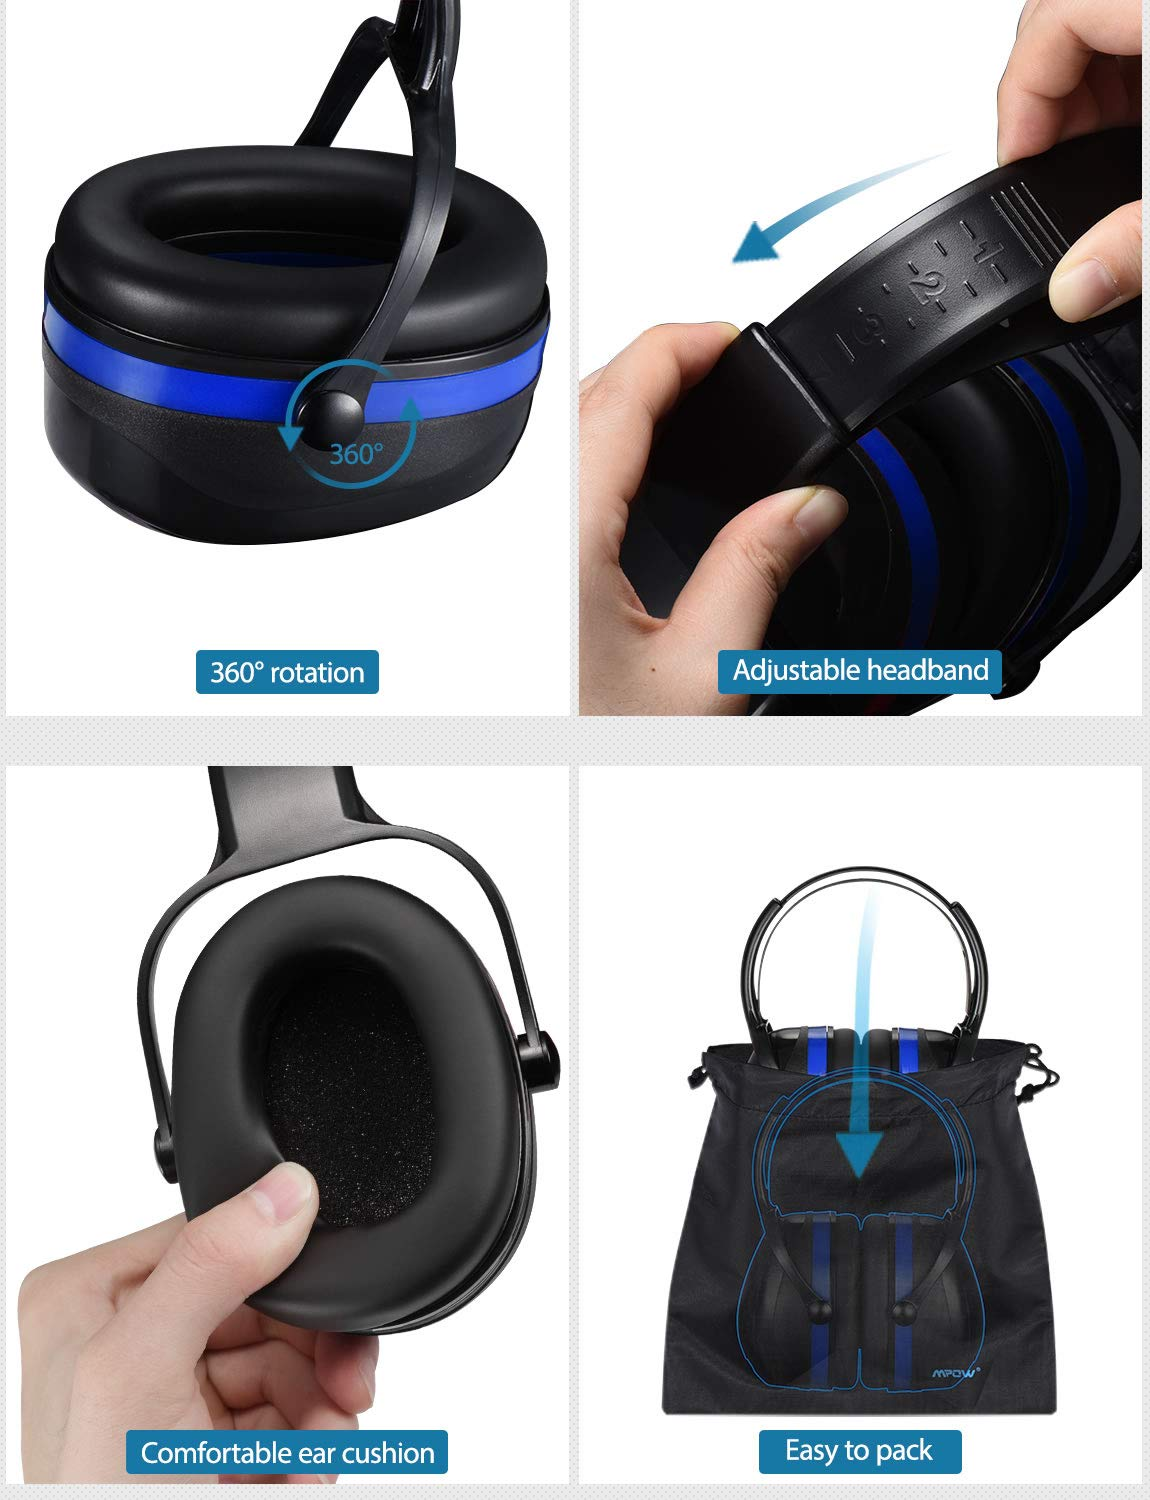 Mpow [Upgraded] Noise Reduction Safety Ear Muffs, Adjustable SNR 36dB Shooting Hunting Muffs, Hearing Protection with a Carrying Bag, Ear Defenders Fits Adults to Kids with Twist Resistant Handband by Mpow (Image #3)